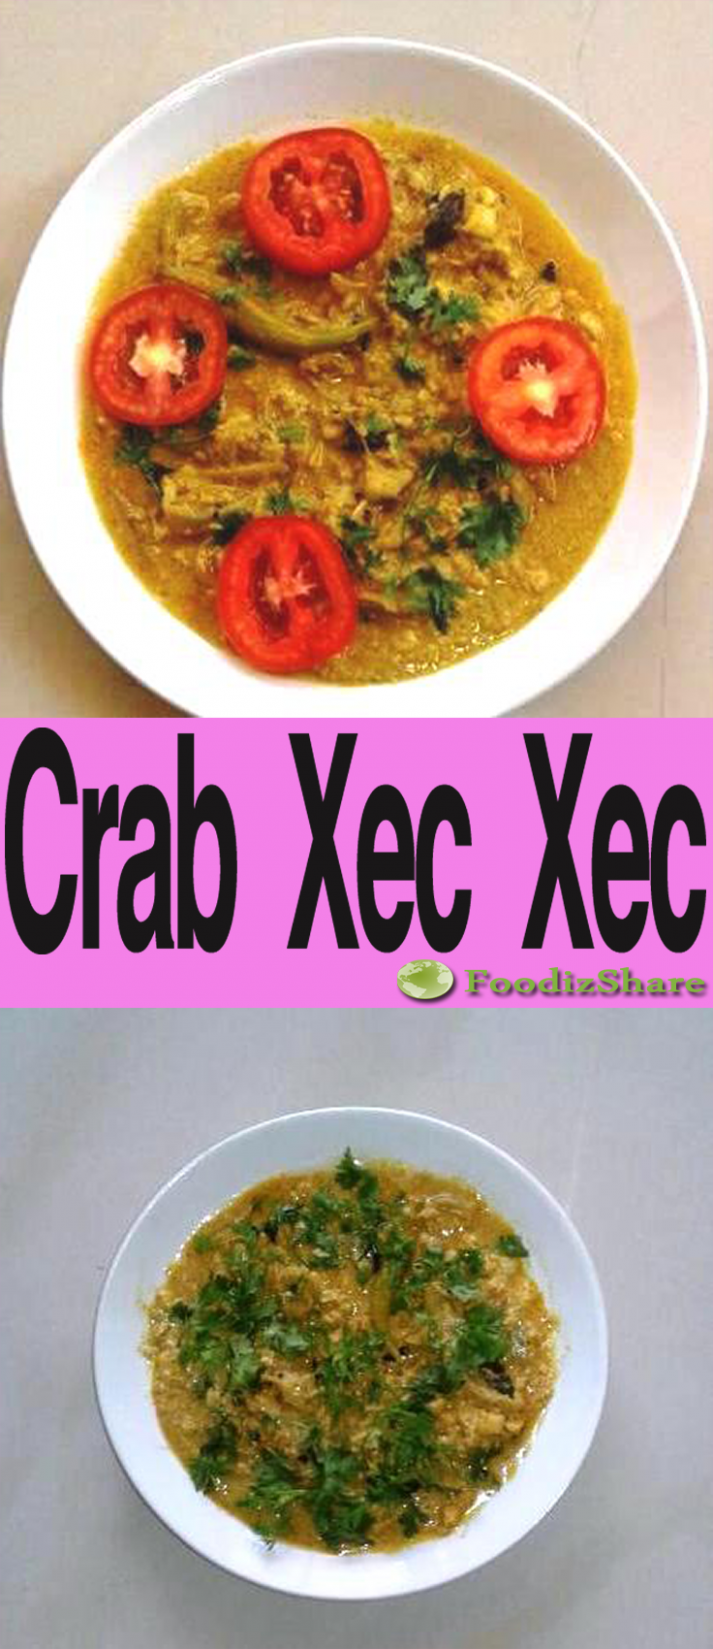 Crab Xec Xec Is A Traditional Goan Crab Curry. This Recipe ..